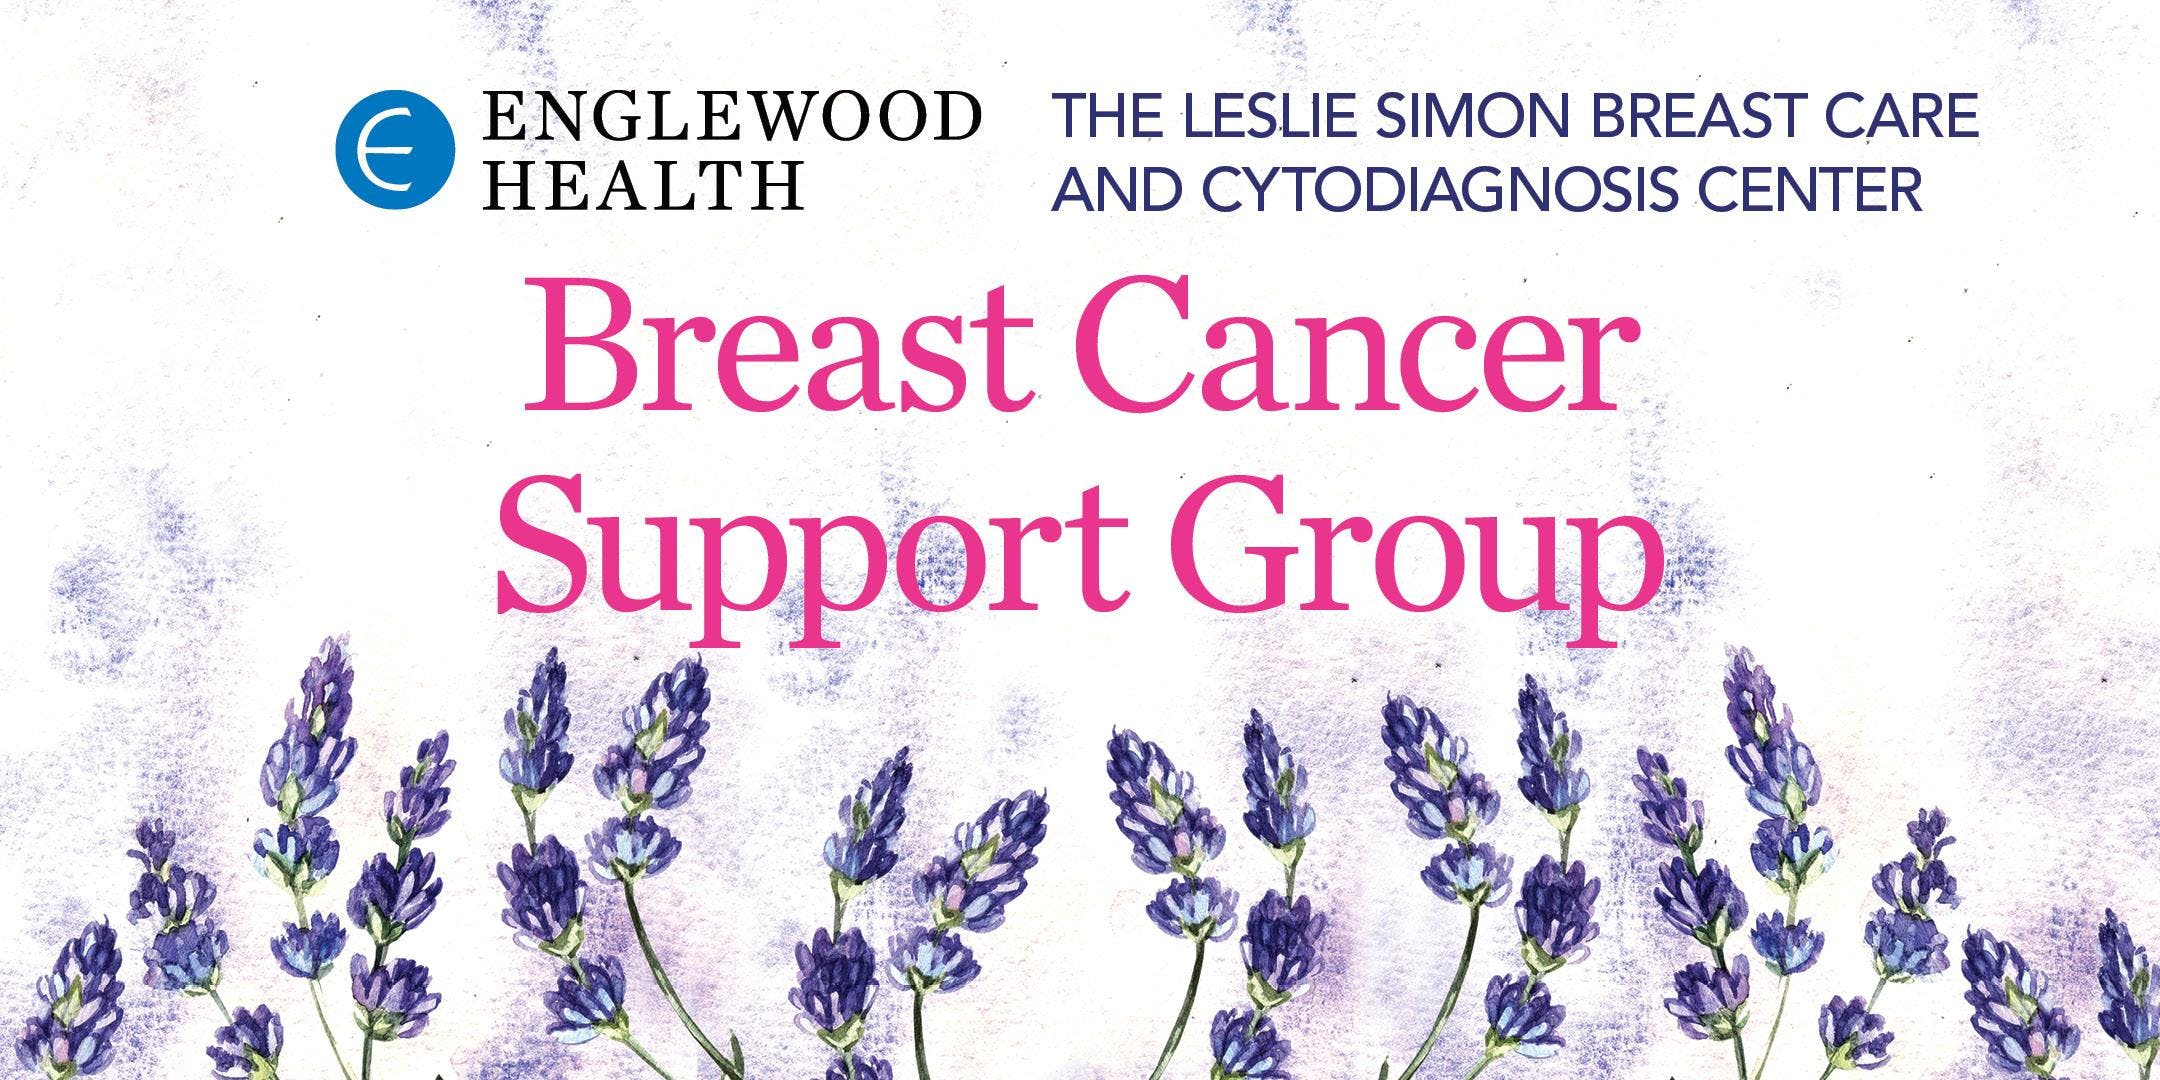 More info: Breast Cancer Support Group